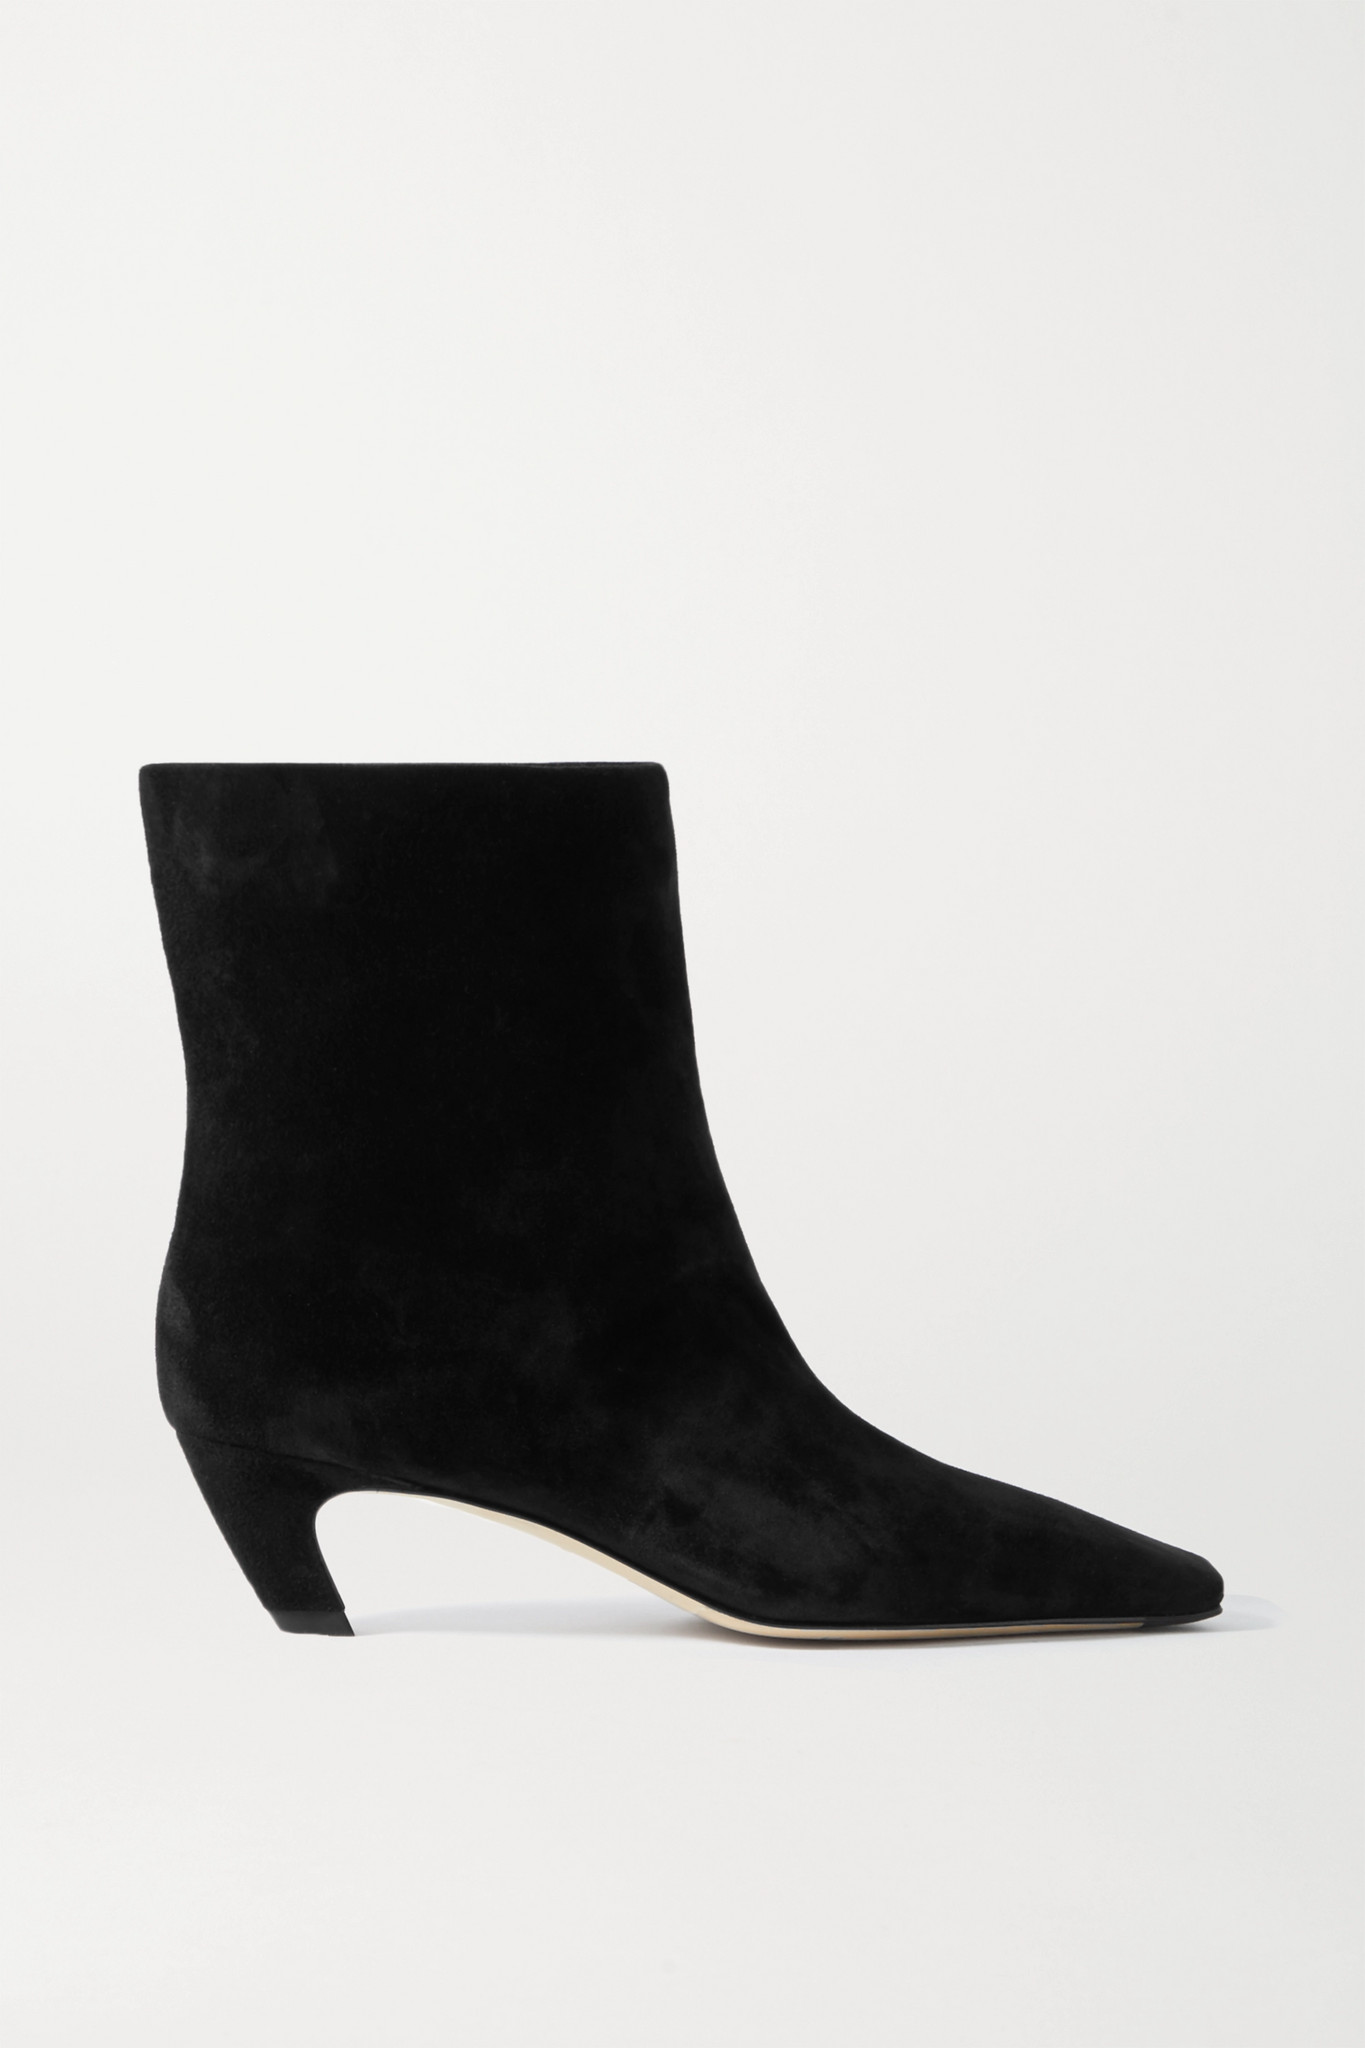 KHAITE - Arizona Suede Ankle Boots - Black - IT40